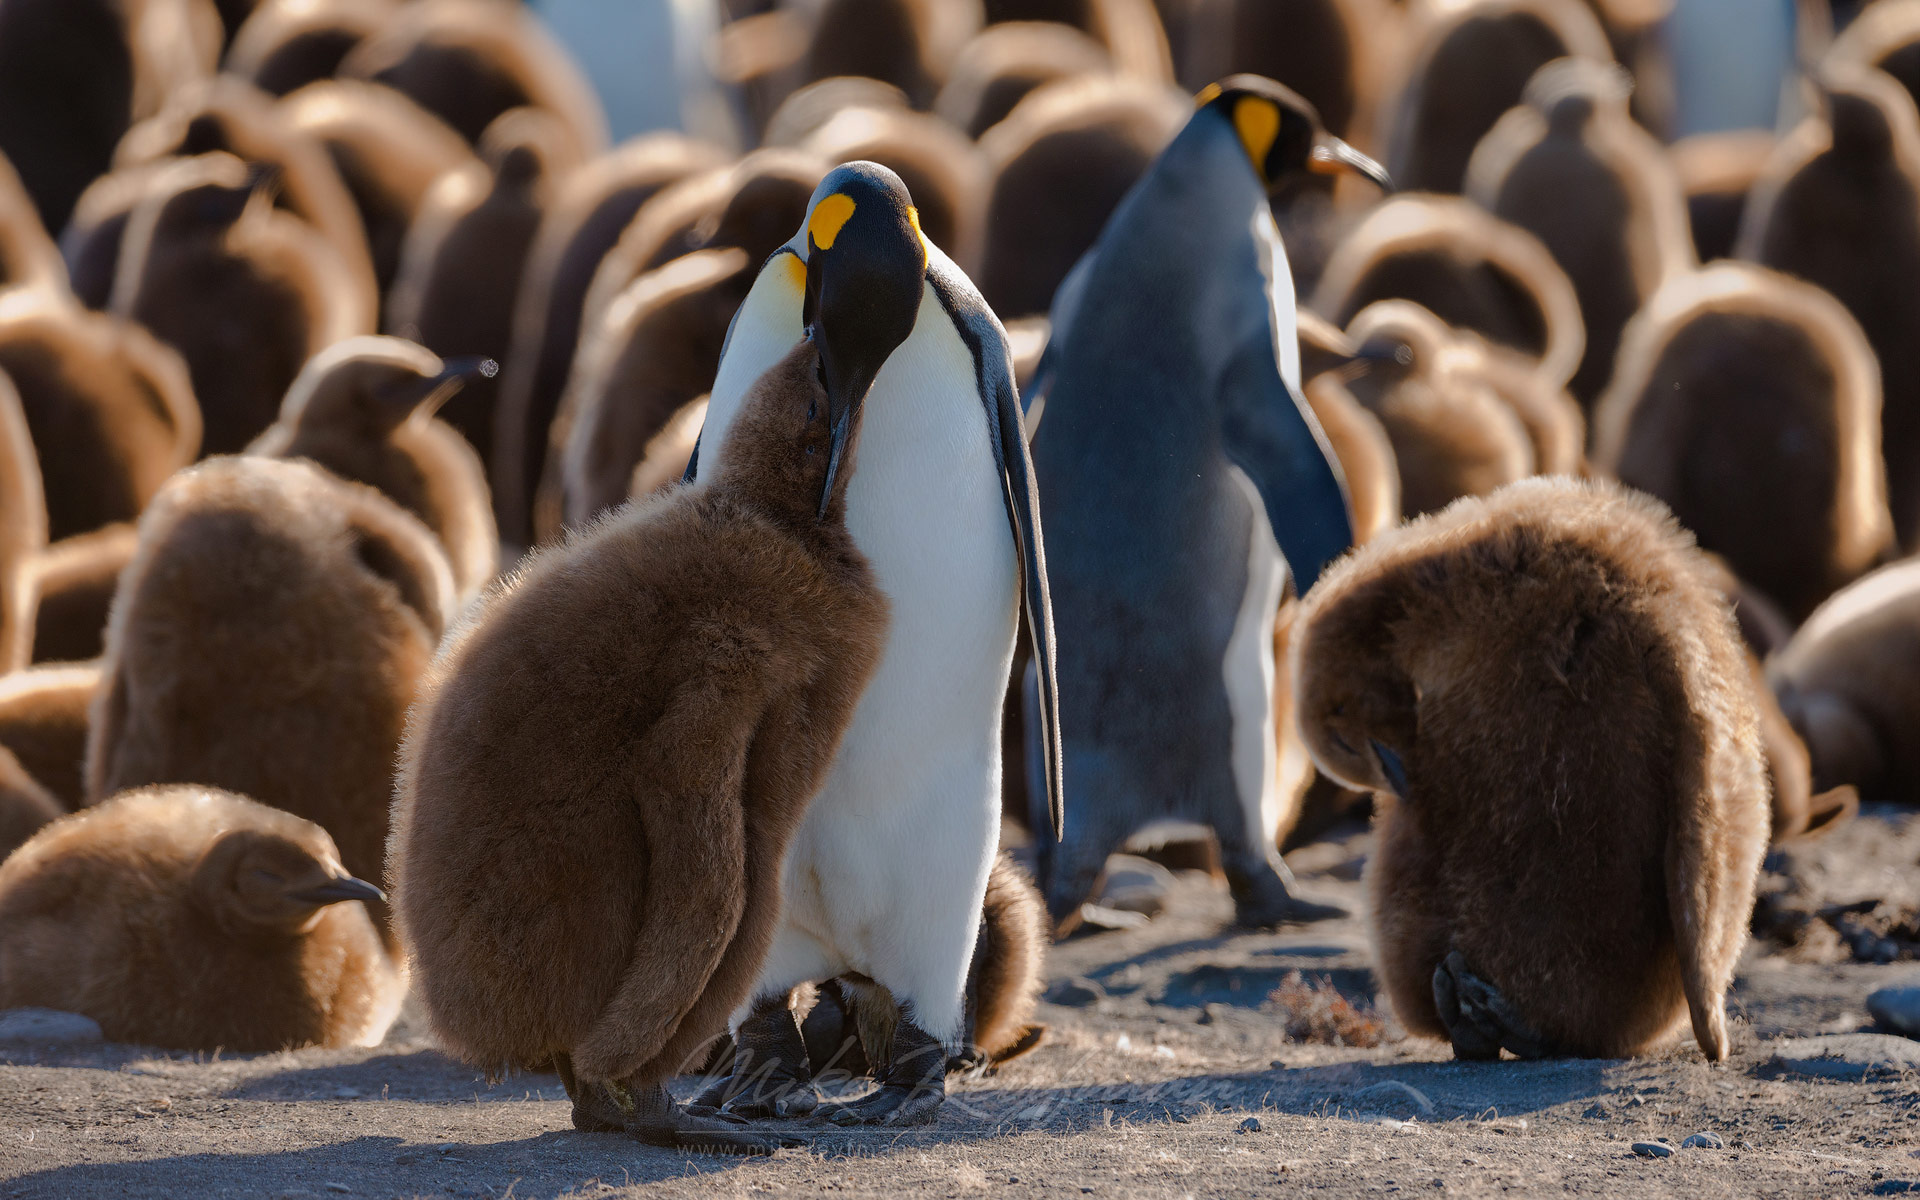 King Penguin feeds chick. King Penguin Creche. Saint Andrews Bay, South Georgia, Sub-Antarctic - King-Penguin-Chicks-In-Creche-South-Georgia-Sub-Antarctic - Mike Reyfman Photography